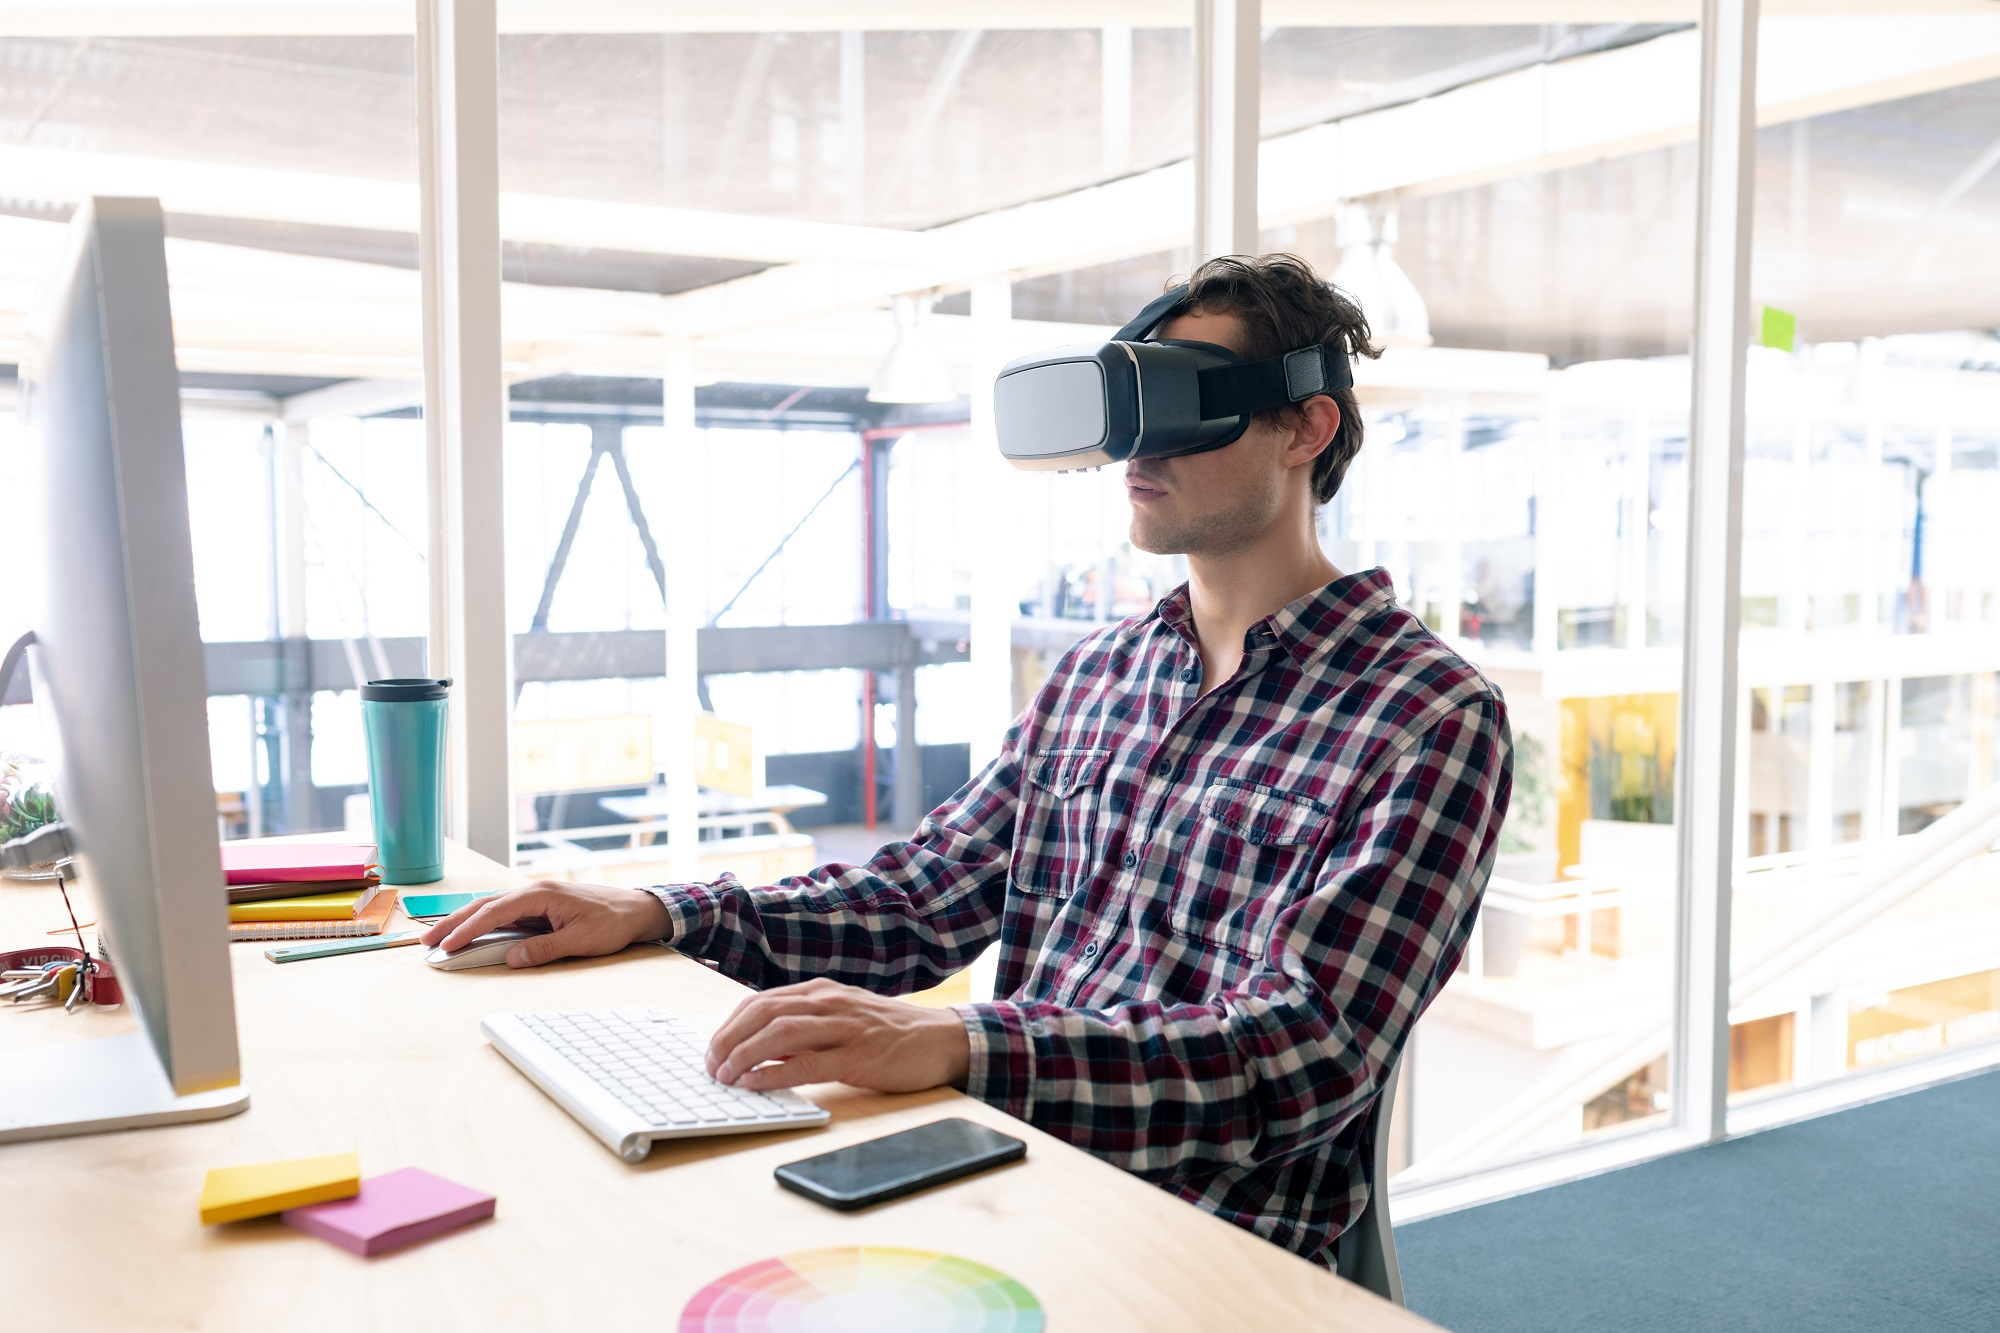 male employee using virtual reality headset while working on computer at a desk in the office